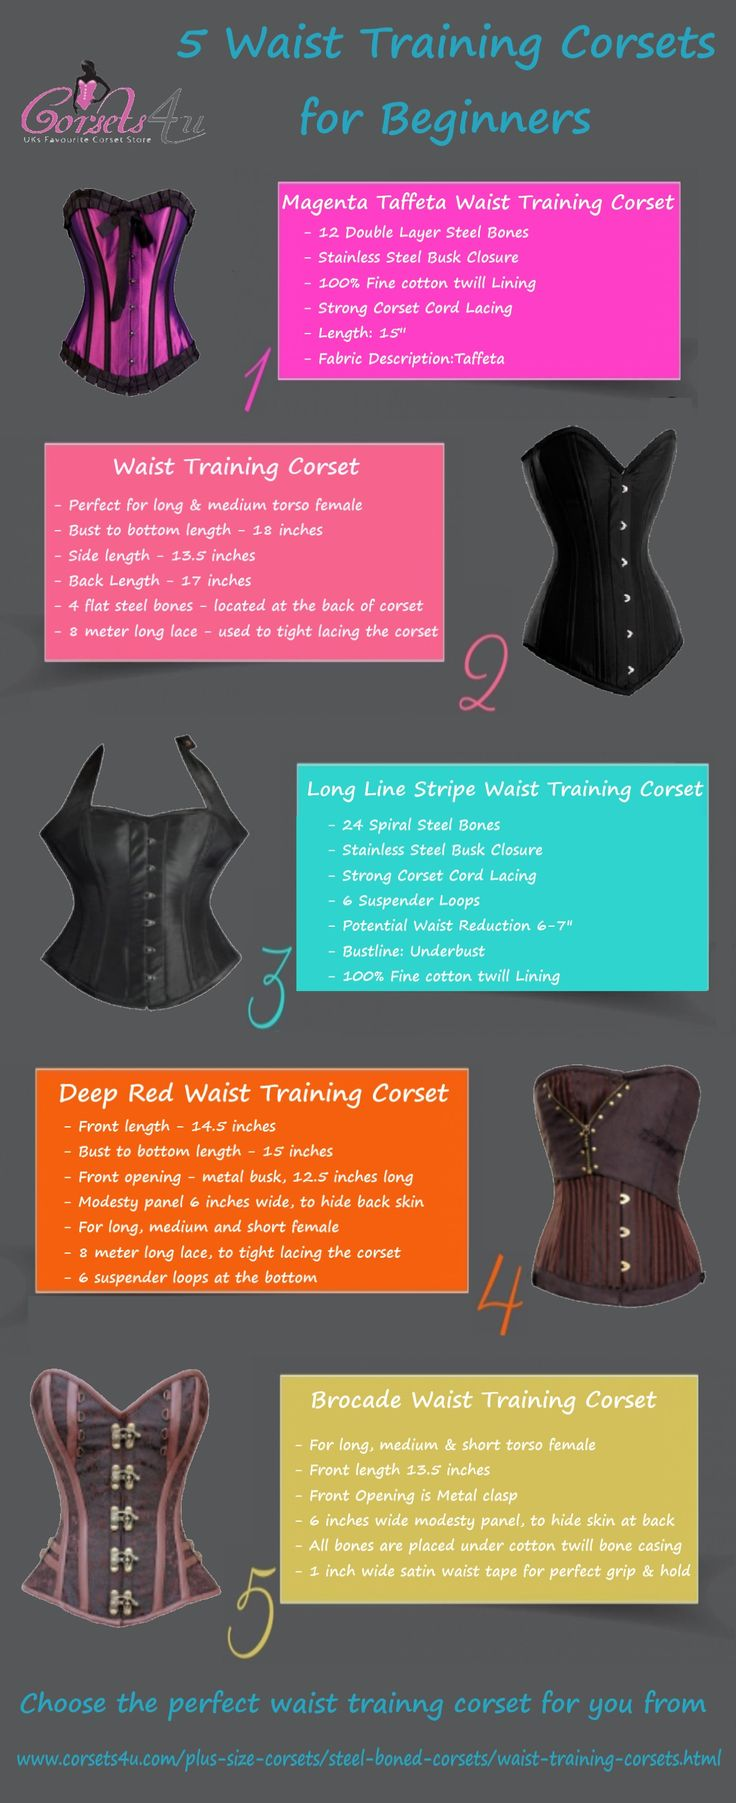 If you are searching for waist training corset to put your body in shape, see what corset you can pick for yourself.